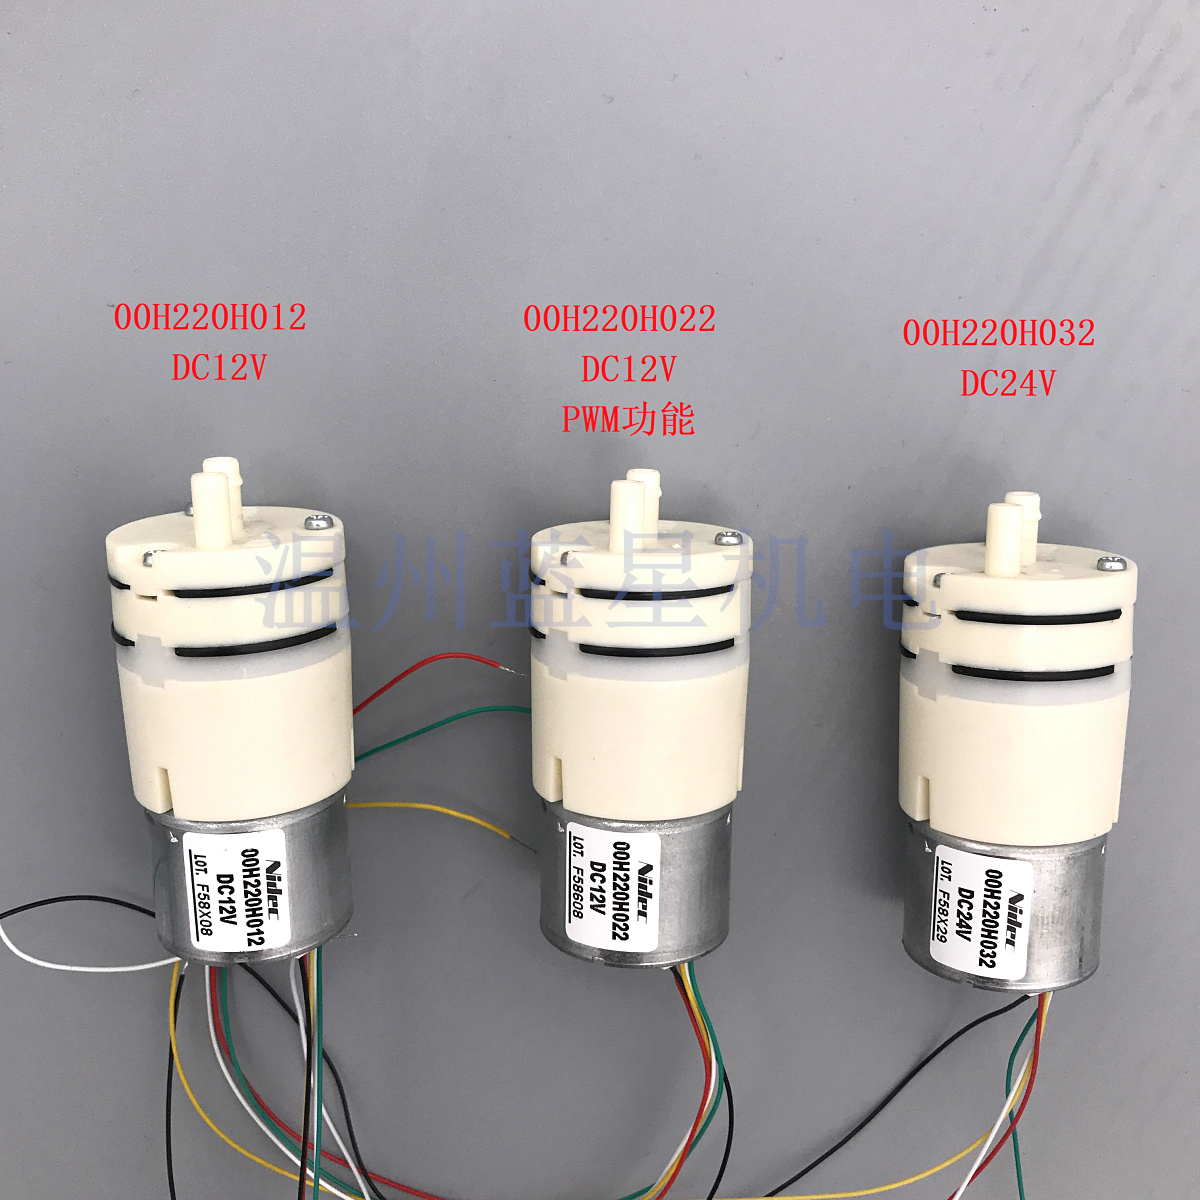 DC brushless air pump 00H220H022DC brushless air pump 00H220H022